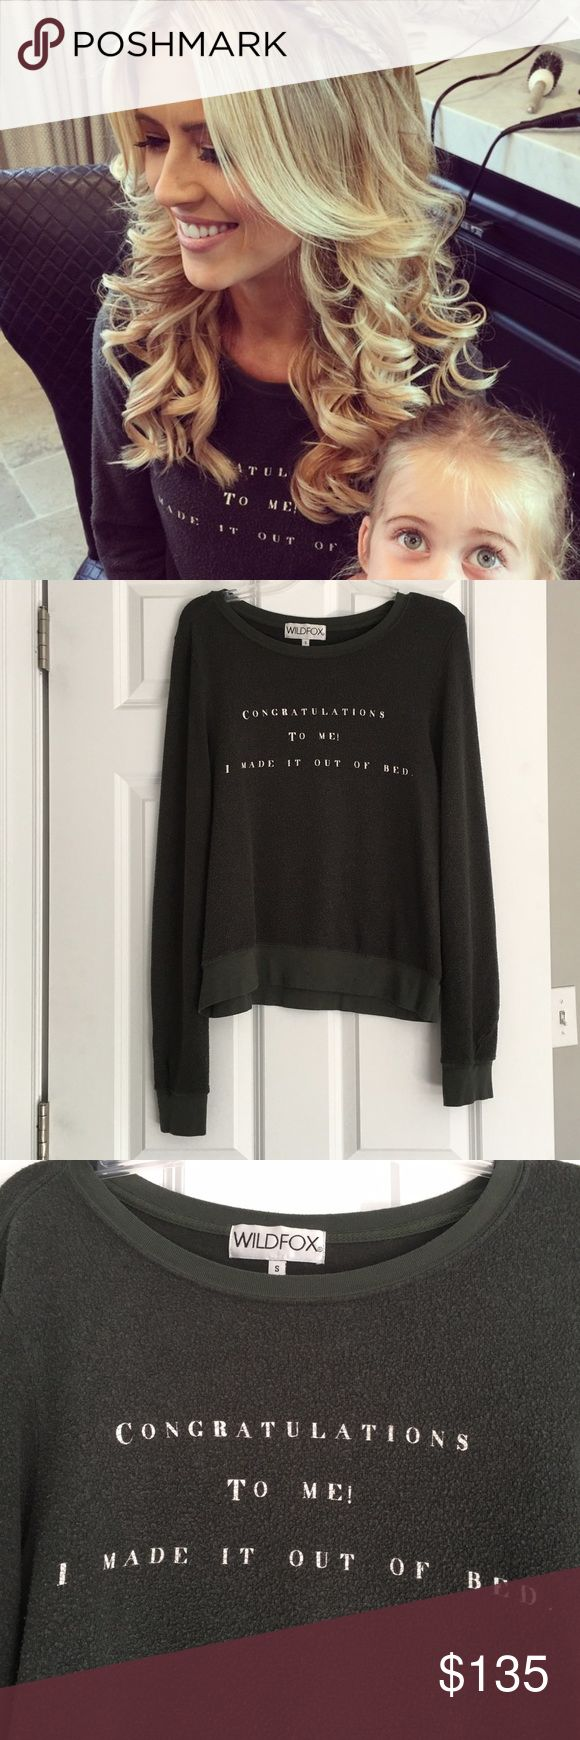 "Wildfox Congrats baggy Beach Jumper Rare Wildfox baggy beach jumper. ""Congratulations to me I made it out of bed"" . Vintage black. Size small. Worn twice. As seen on Christina El Moussa on Flip or Flop. Wildfox Tops"